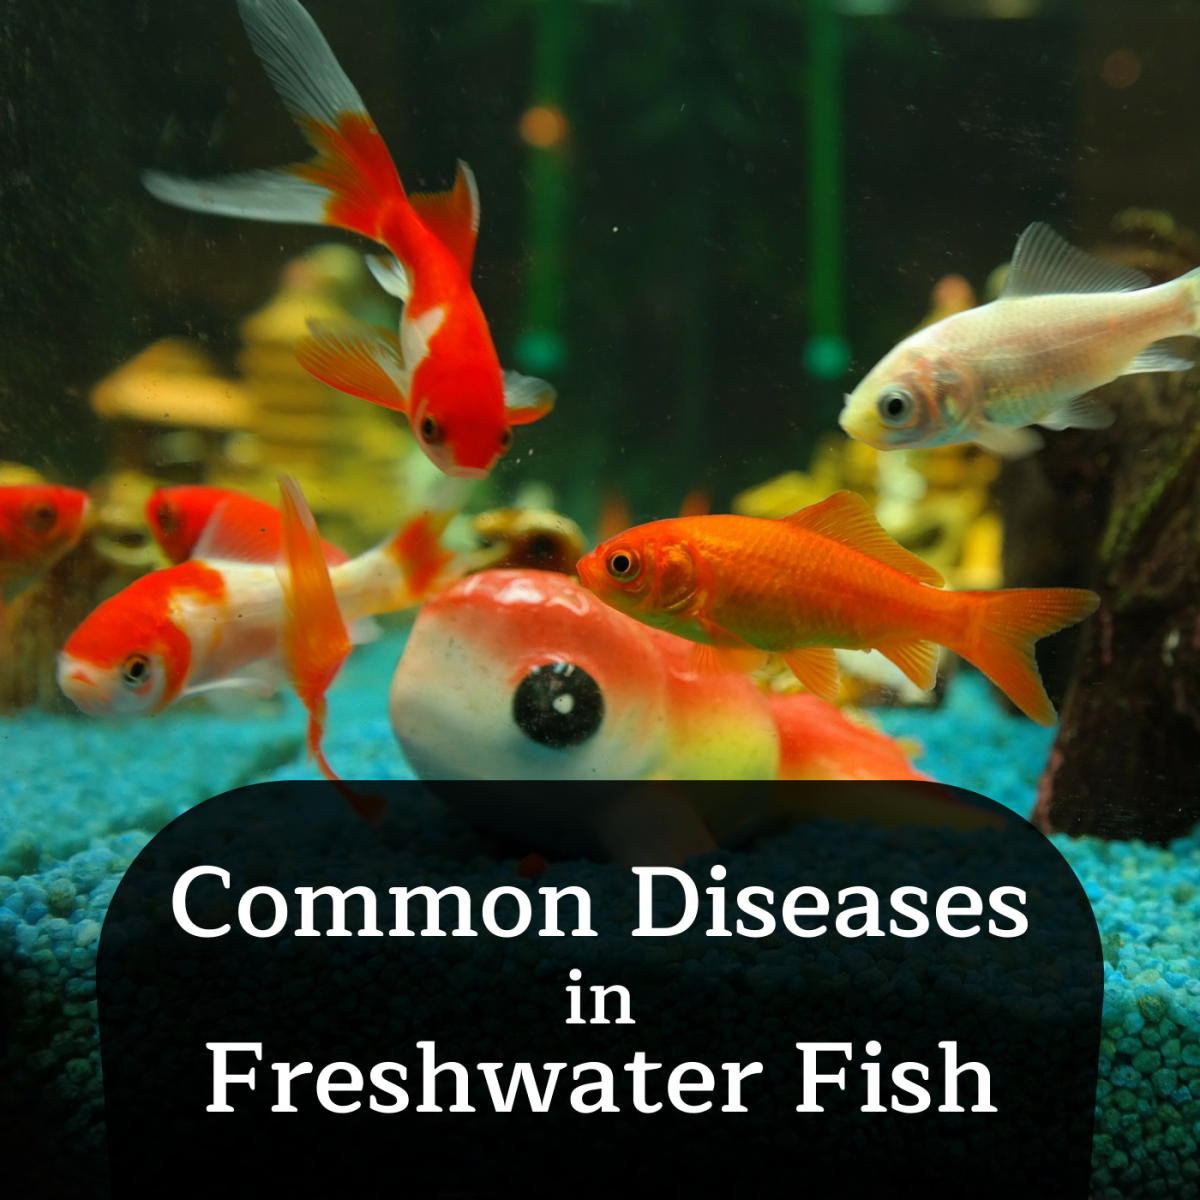 Learn about some common diseases that afflict freshwater fish, such as ich, dropsy, and popeye.